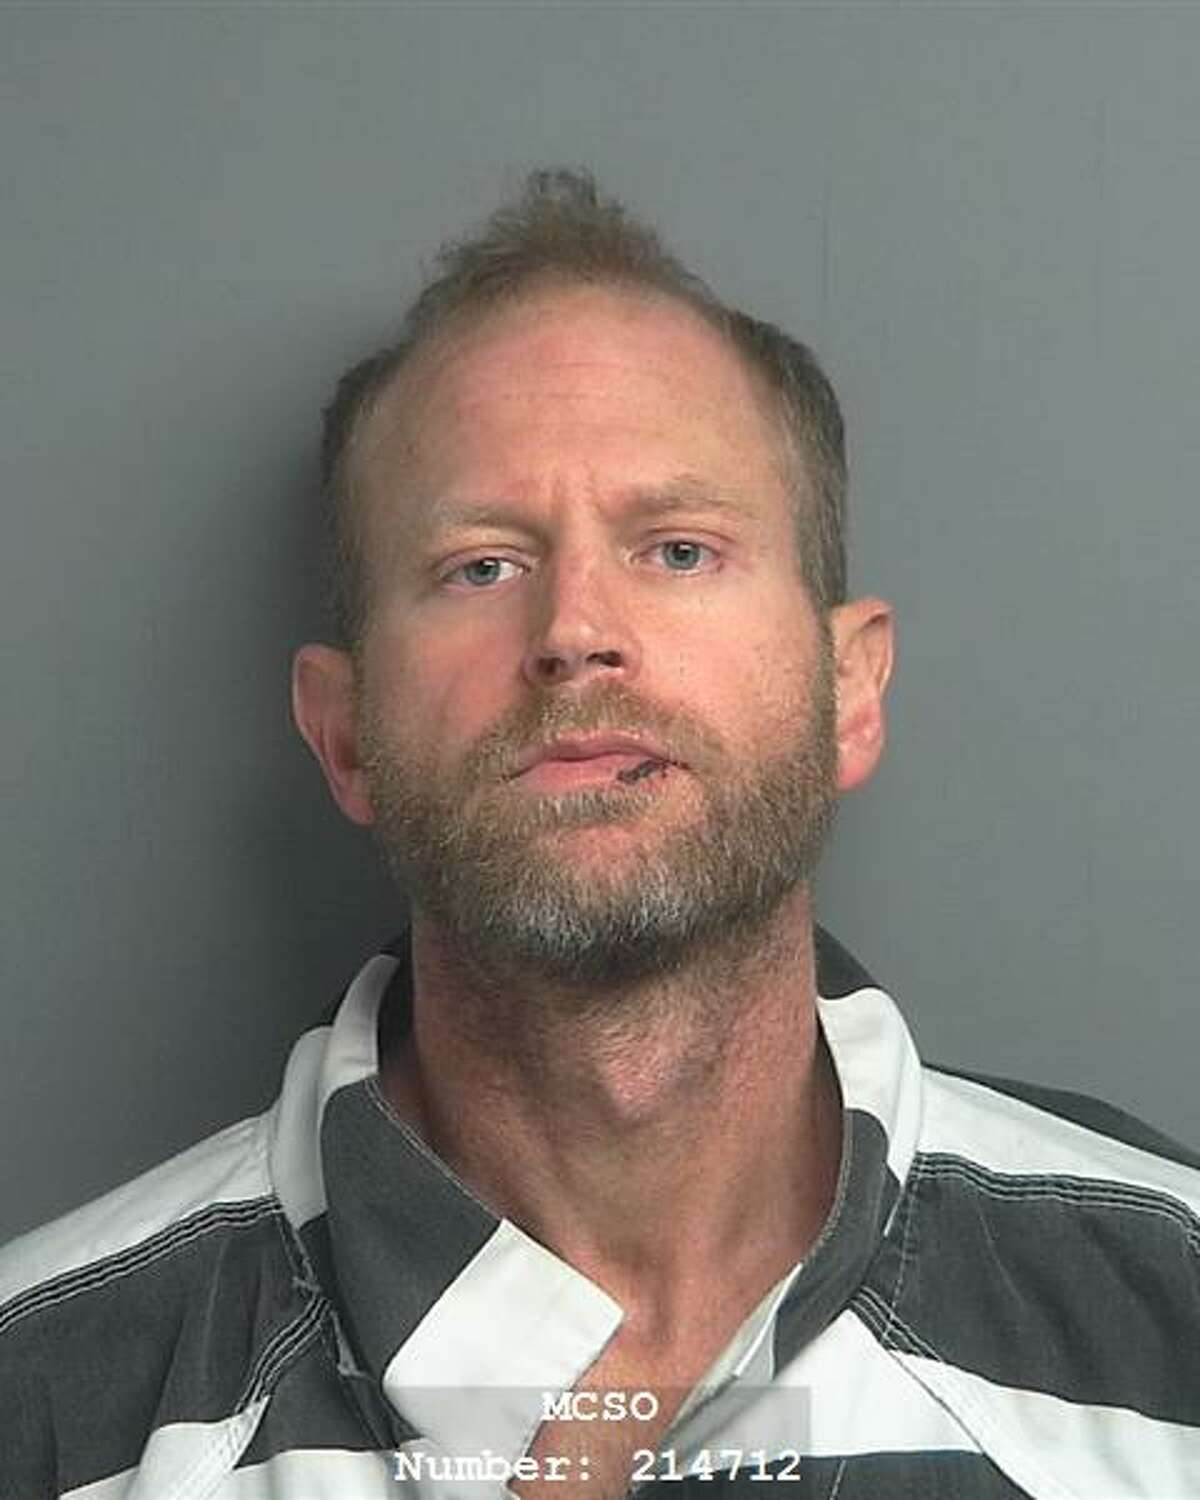 Joshua Mann was arrested on a charge of intoxicated assault with a vehicle.